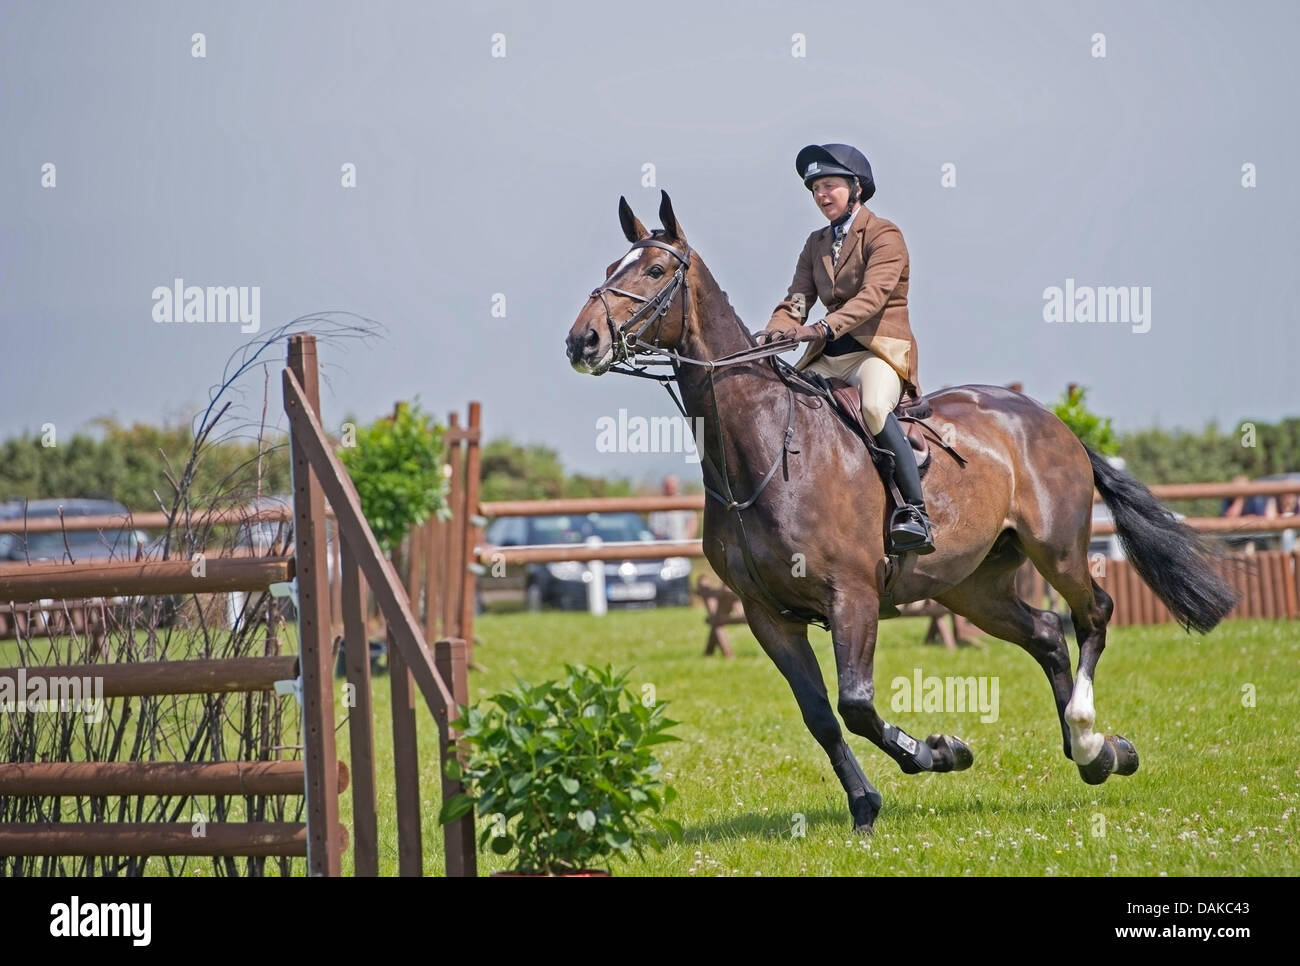 Stithians, UK. 15th July, 2013. Horse approaches the fence during the show jumping contest at the Stithians show, - Stock Image